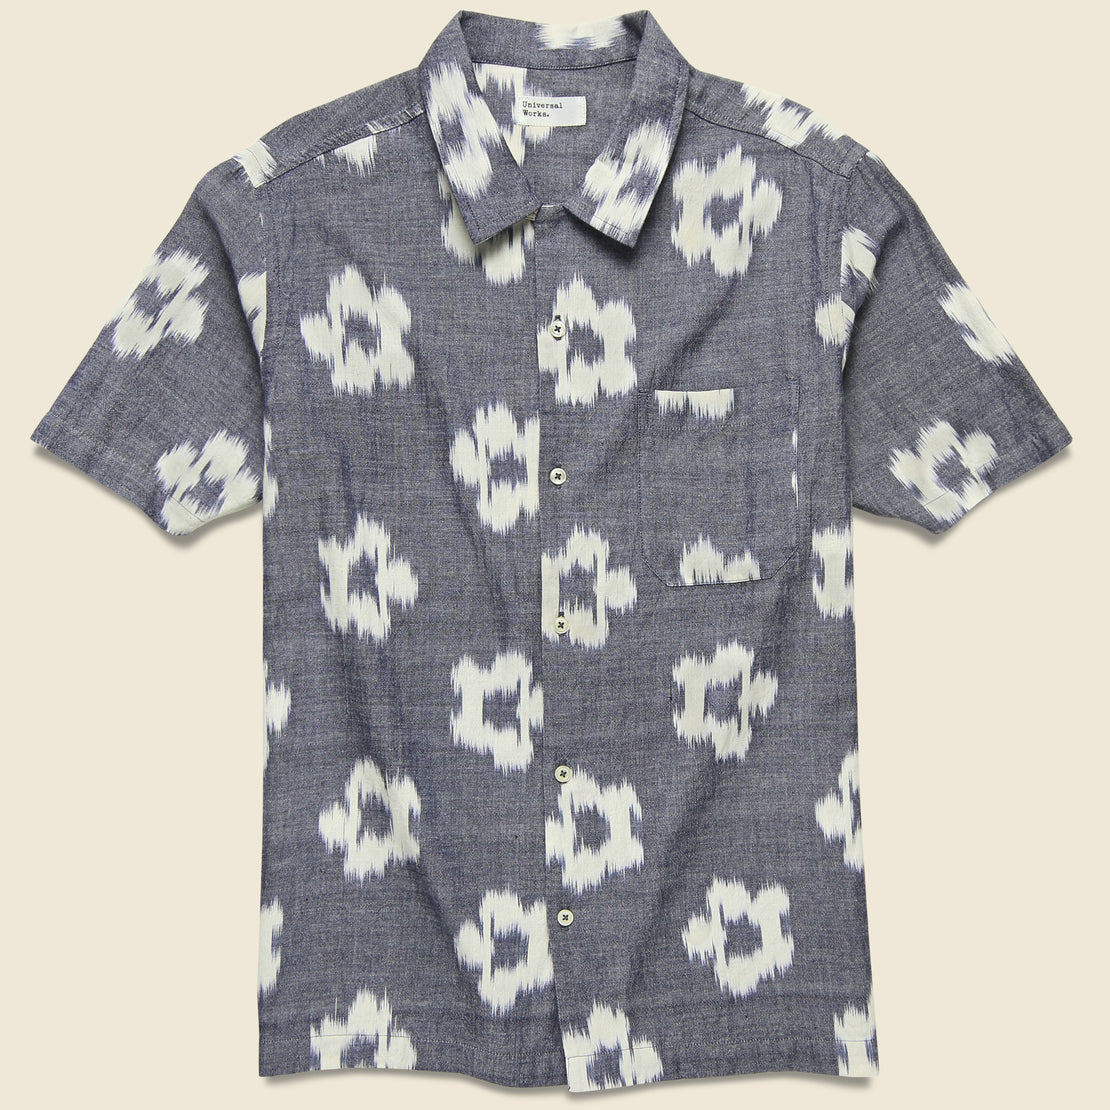 Universal Works Road Shirt - Grey Ikat Flower